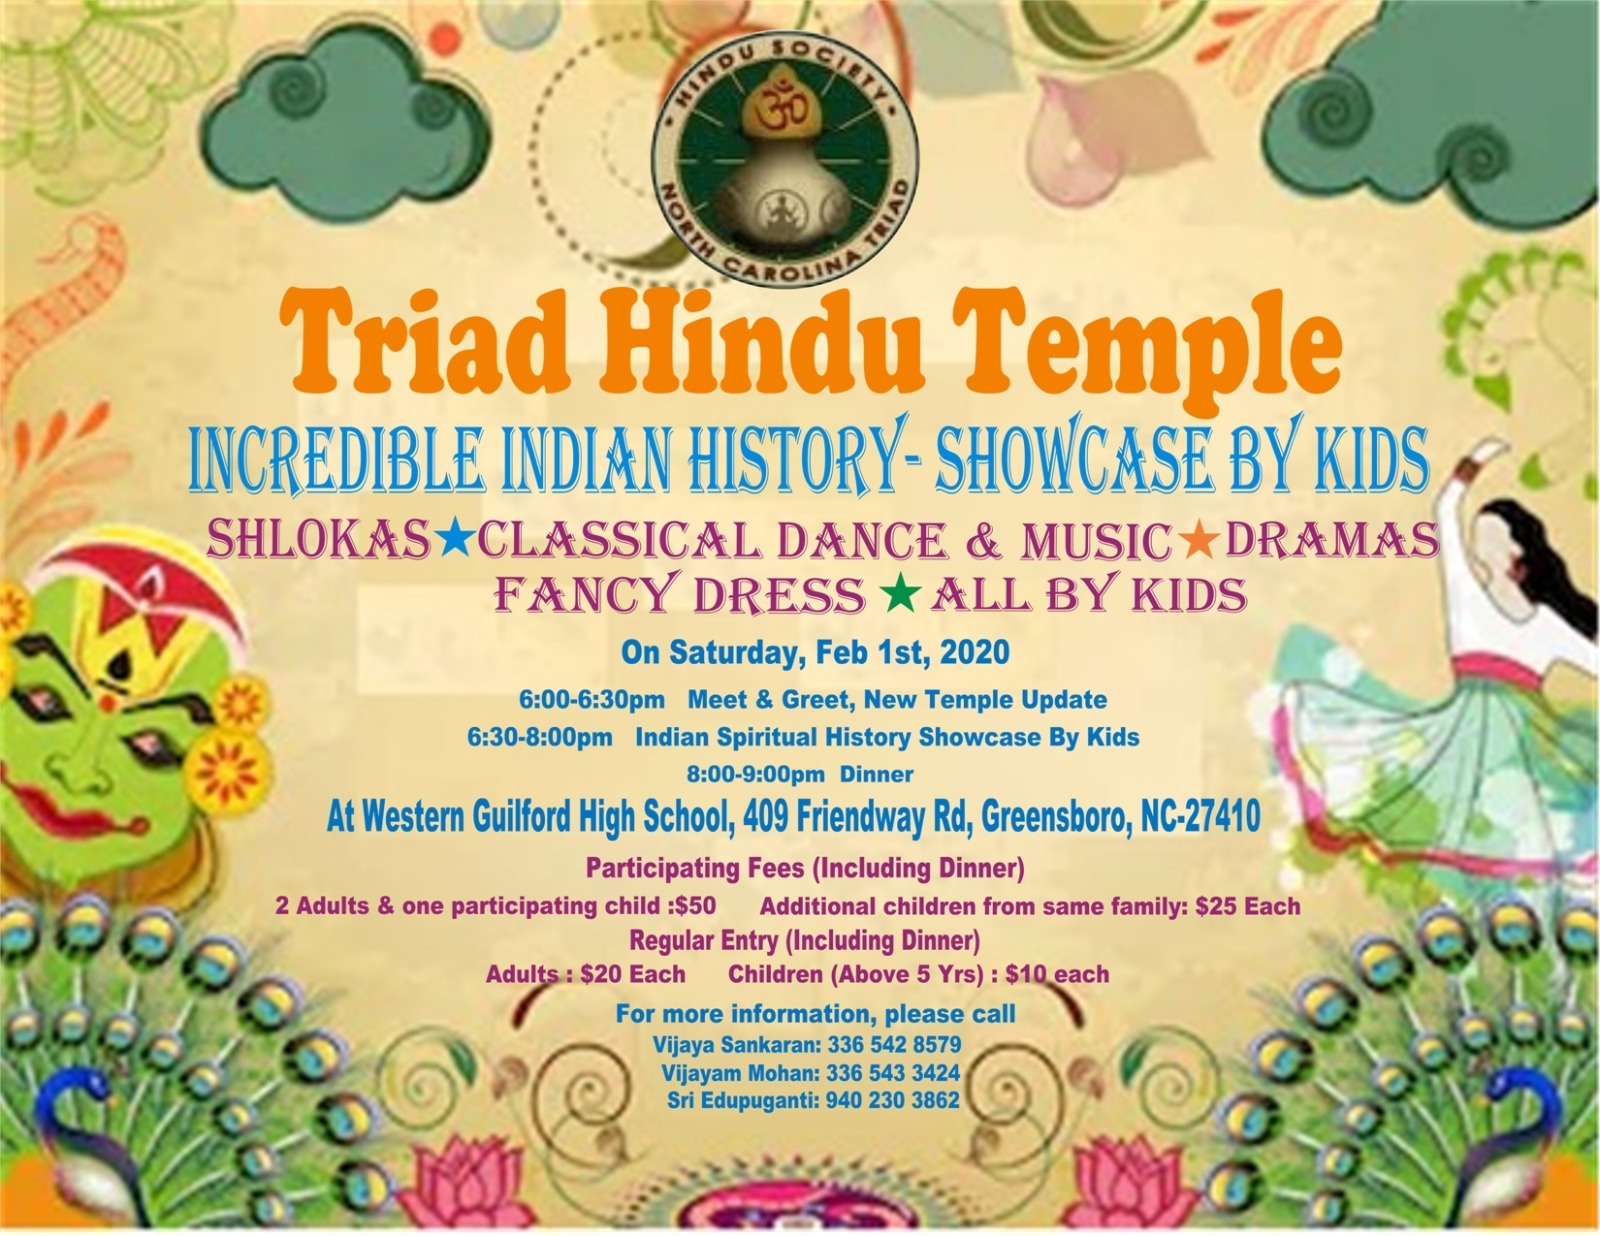 Incredible Indian History Showcase by Kids